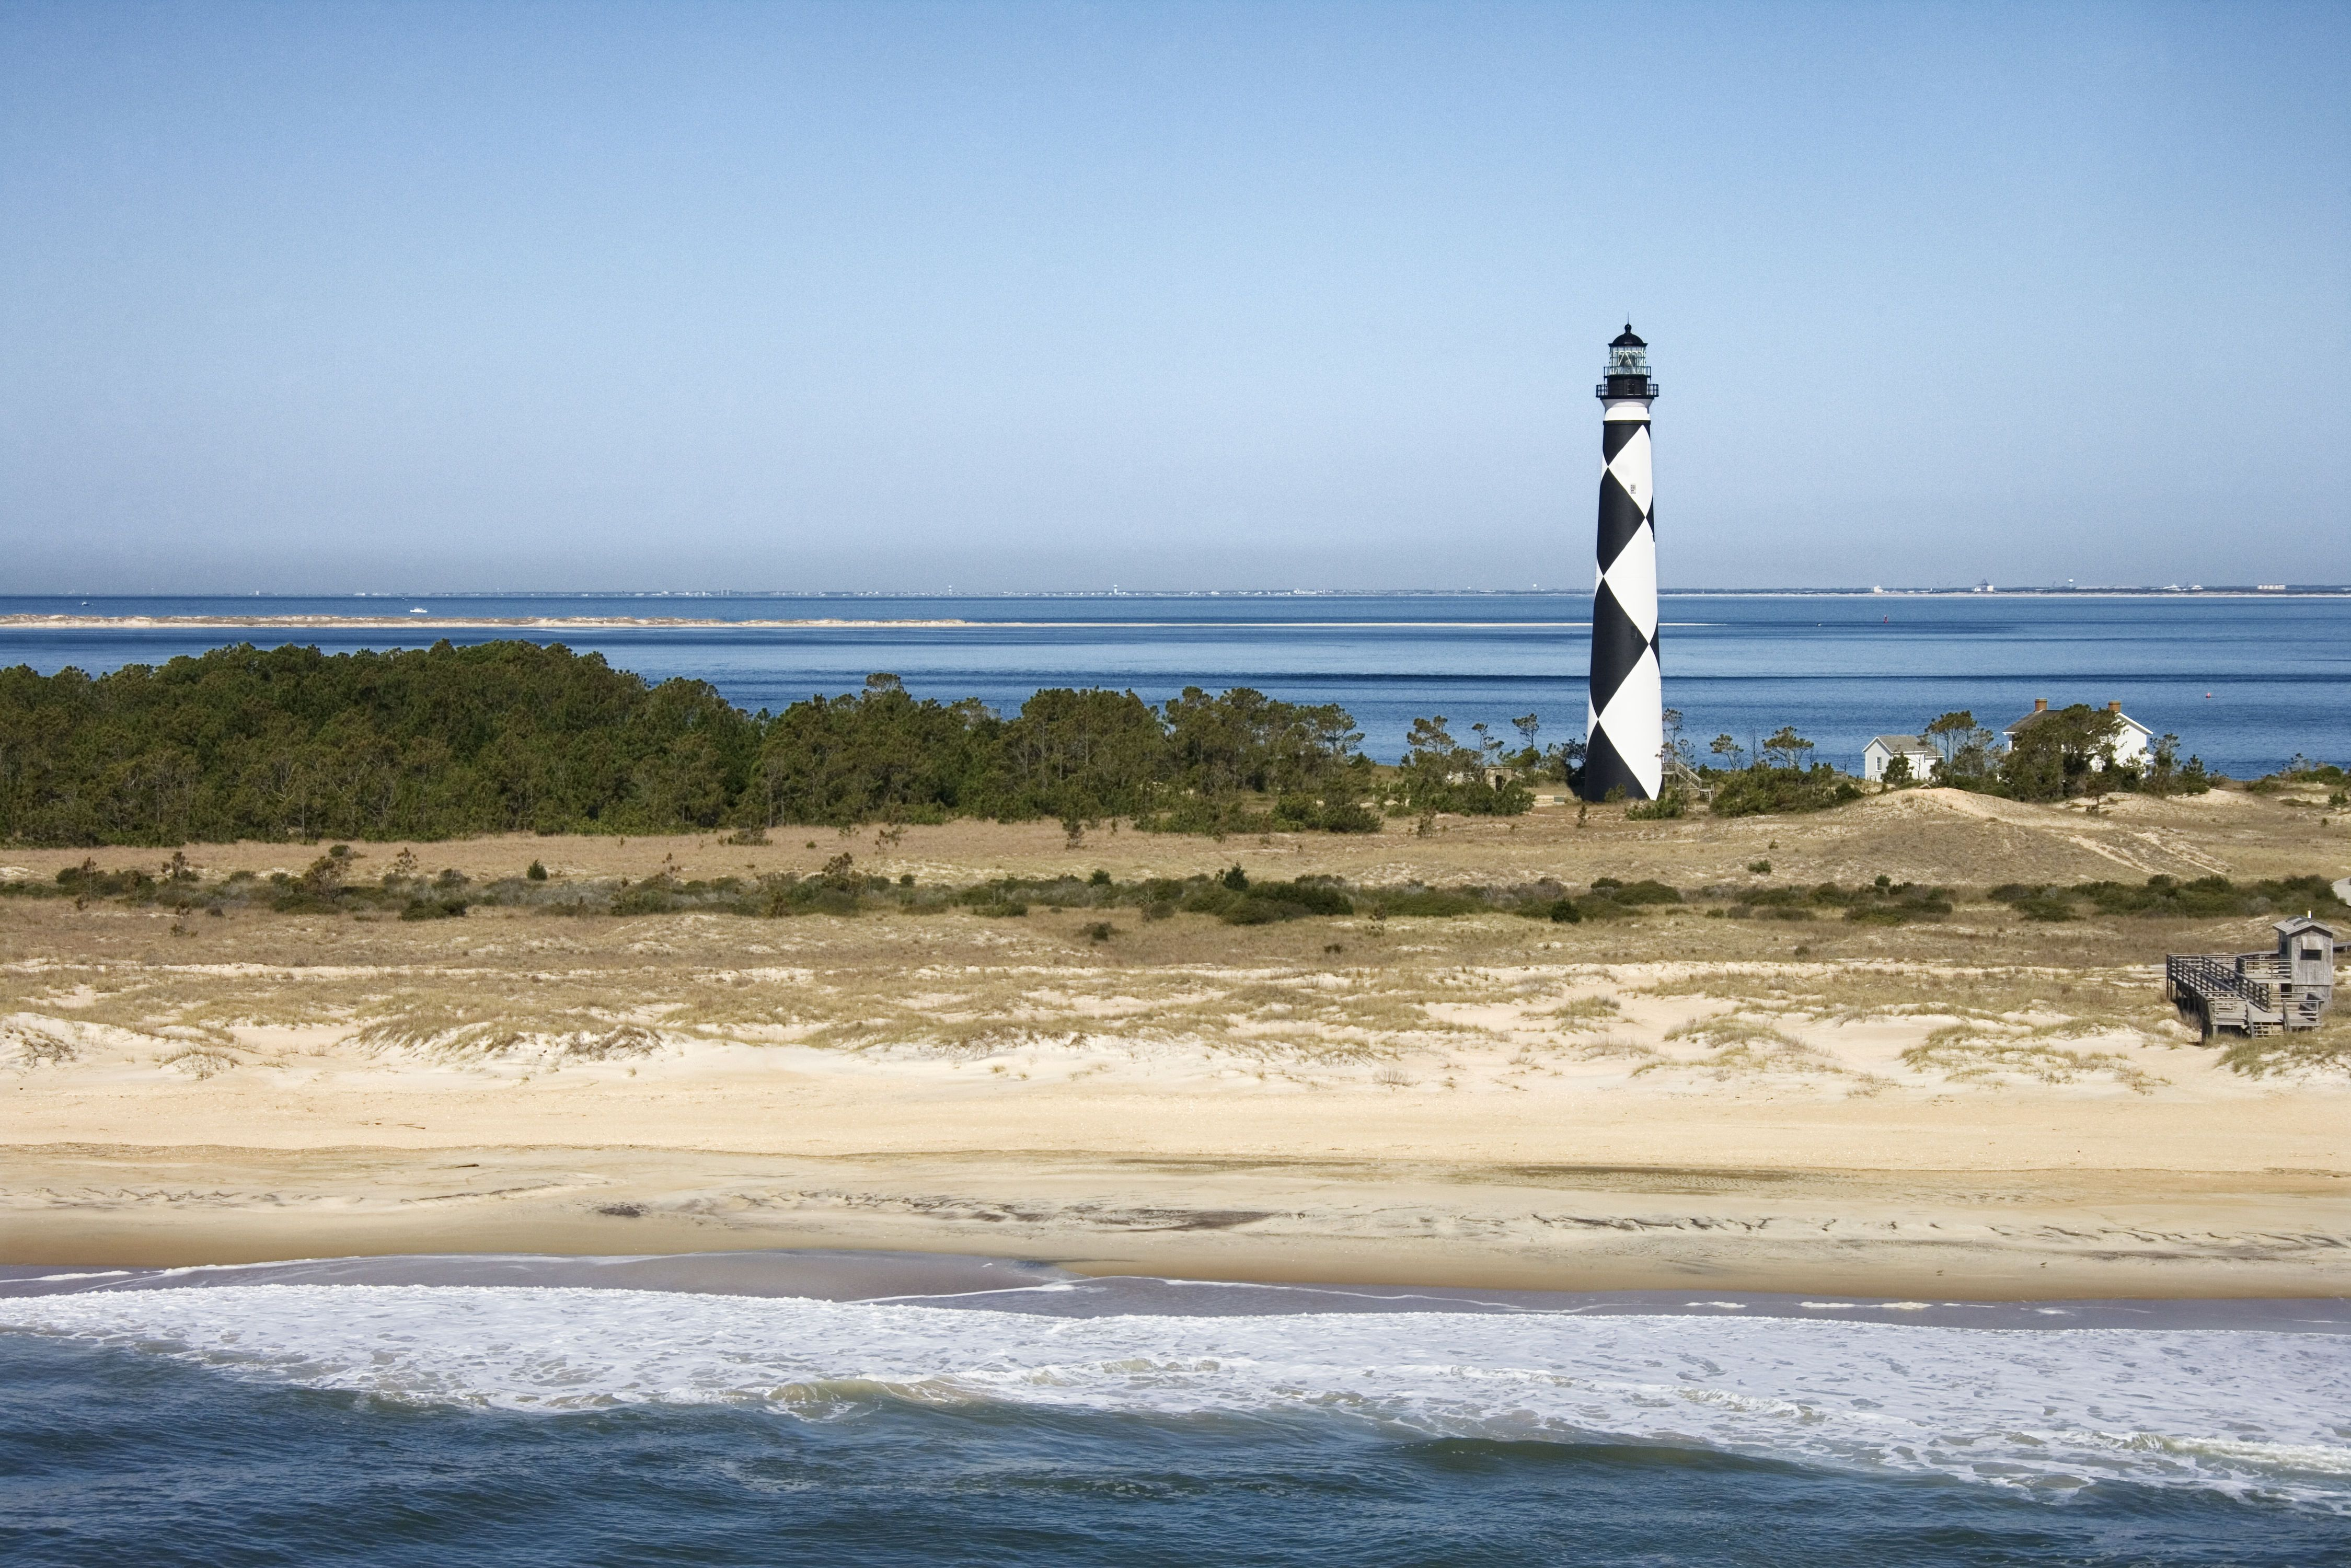 Cape Lookout Lighthouse Harkers Island North Carolina Beaches Harkers Island Road Trip Usa